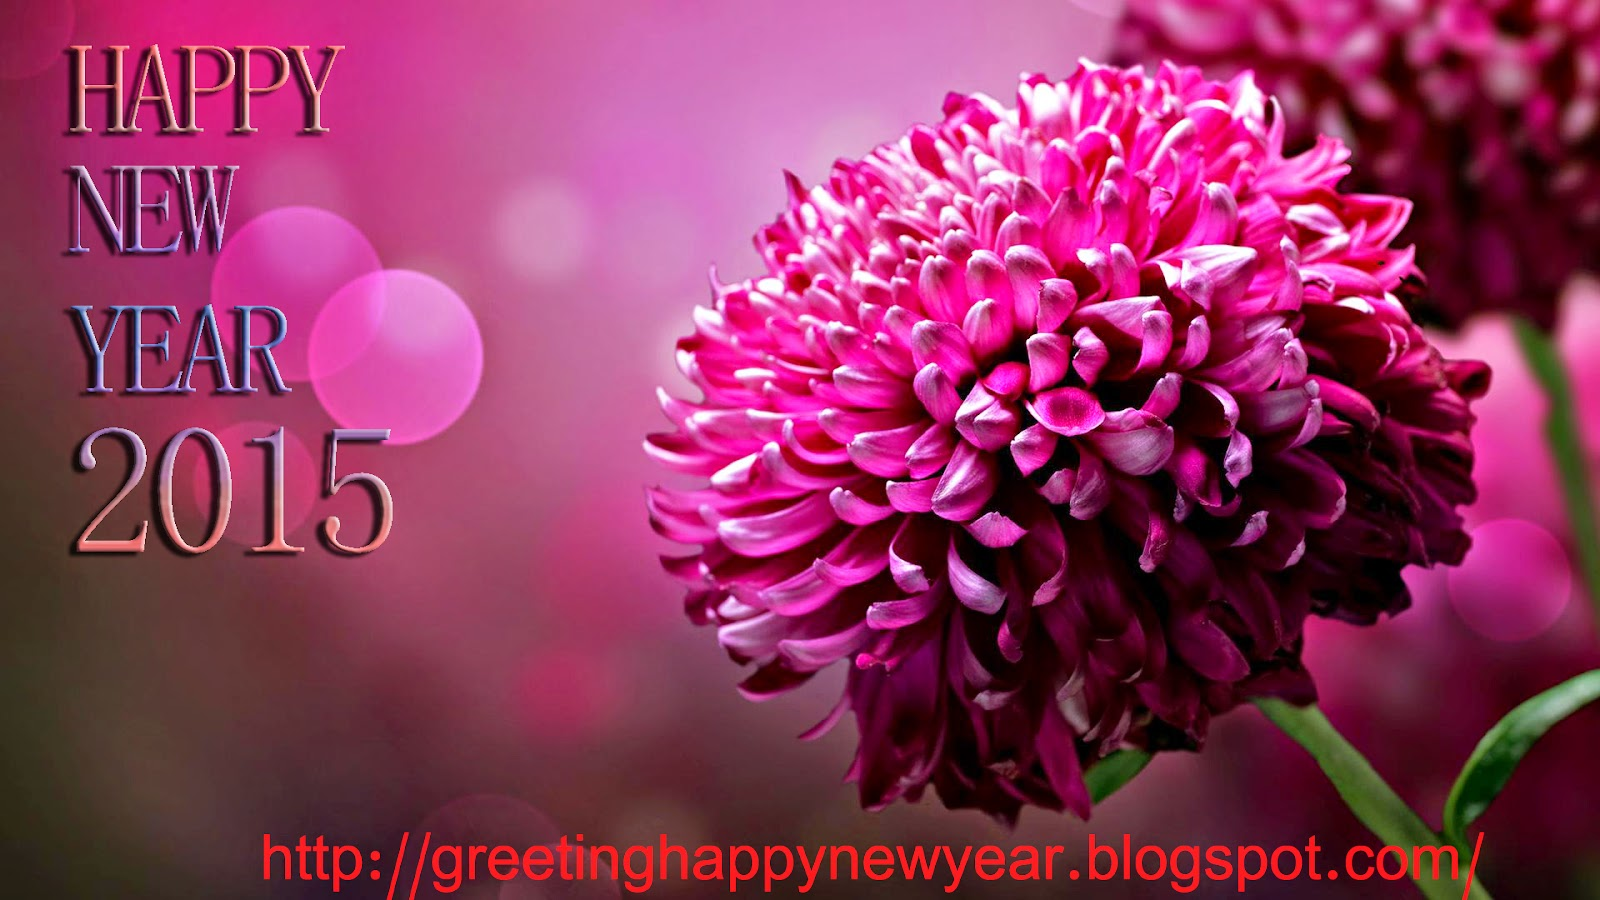 Happy New Year 2015 HD Rose - Wallpaper For Free